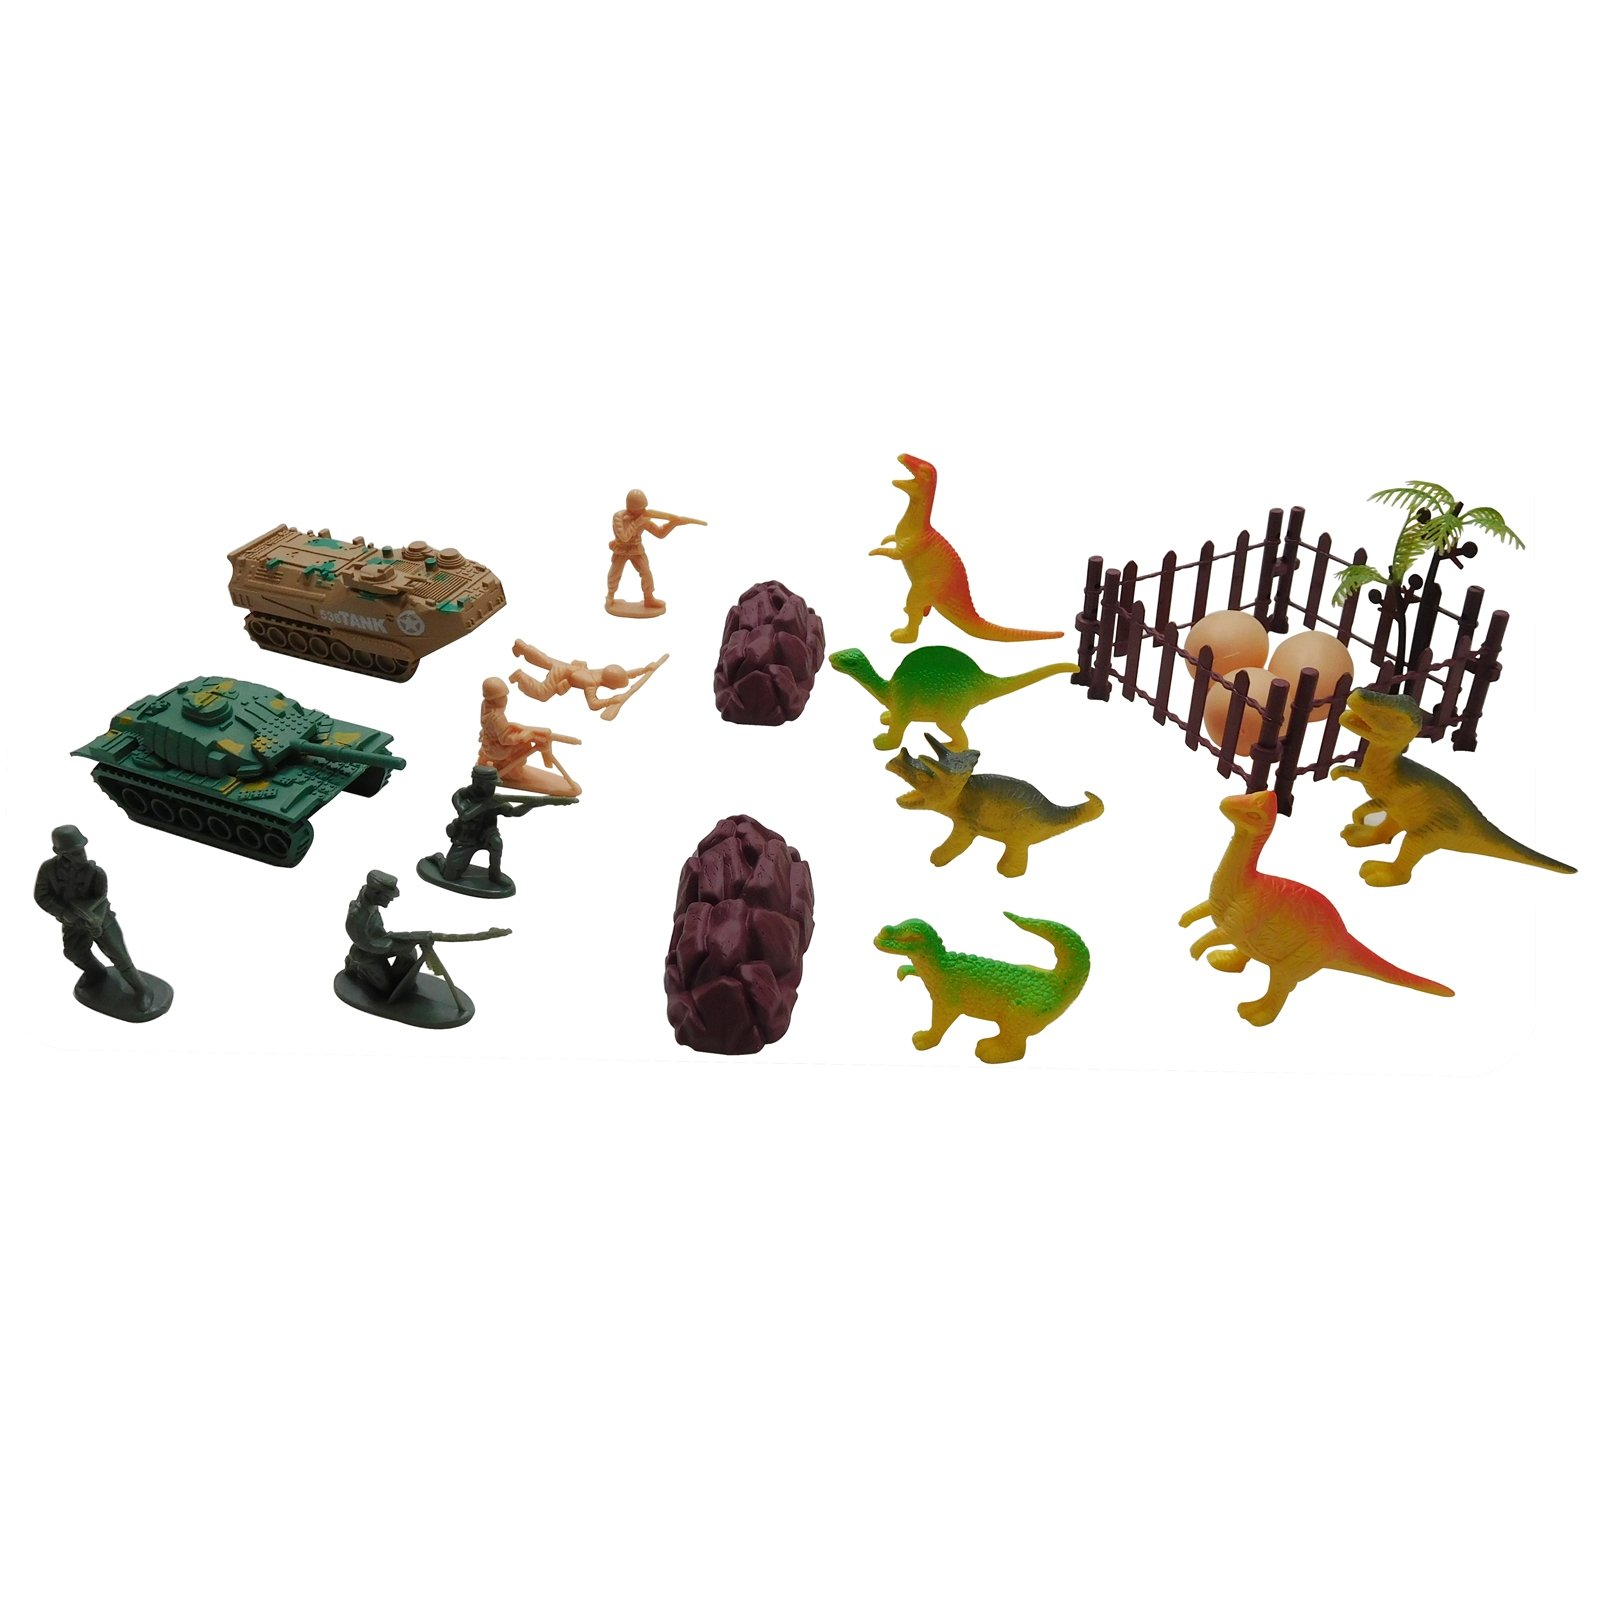 21pc Battle Dinosaur vs Army Men Combat Action Figure Kids Toy Play Set